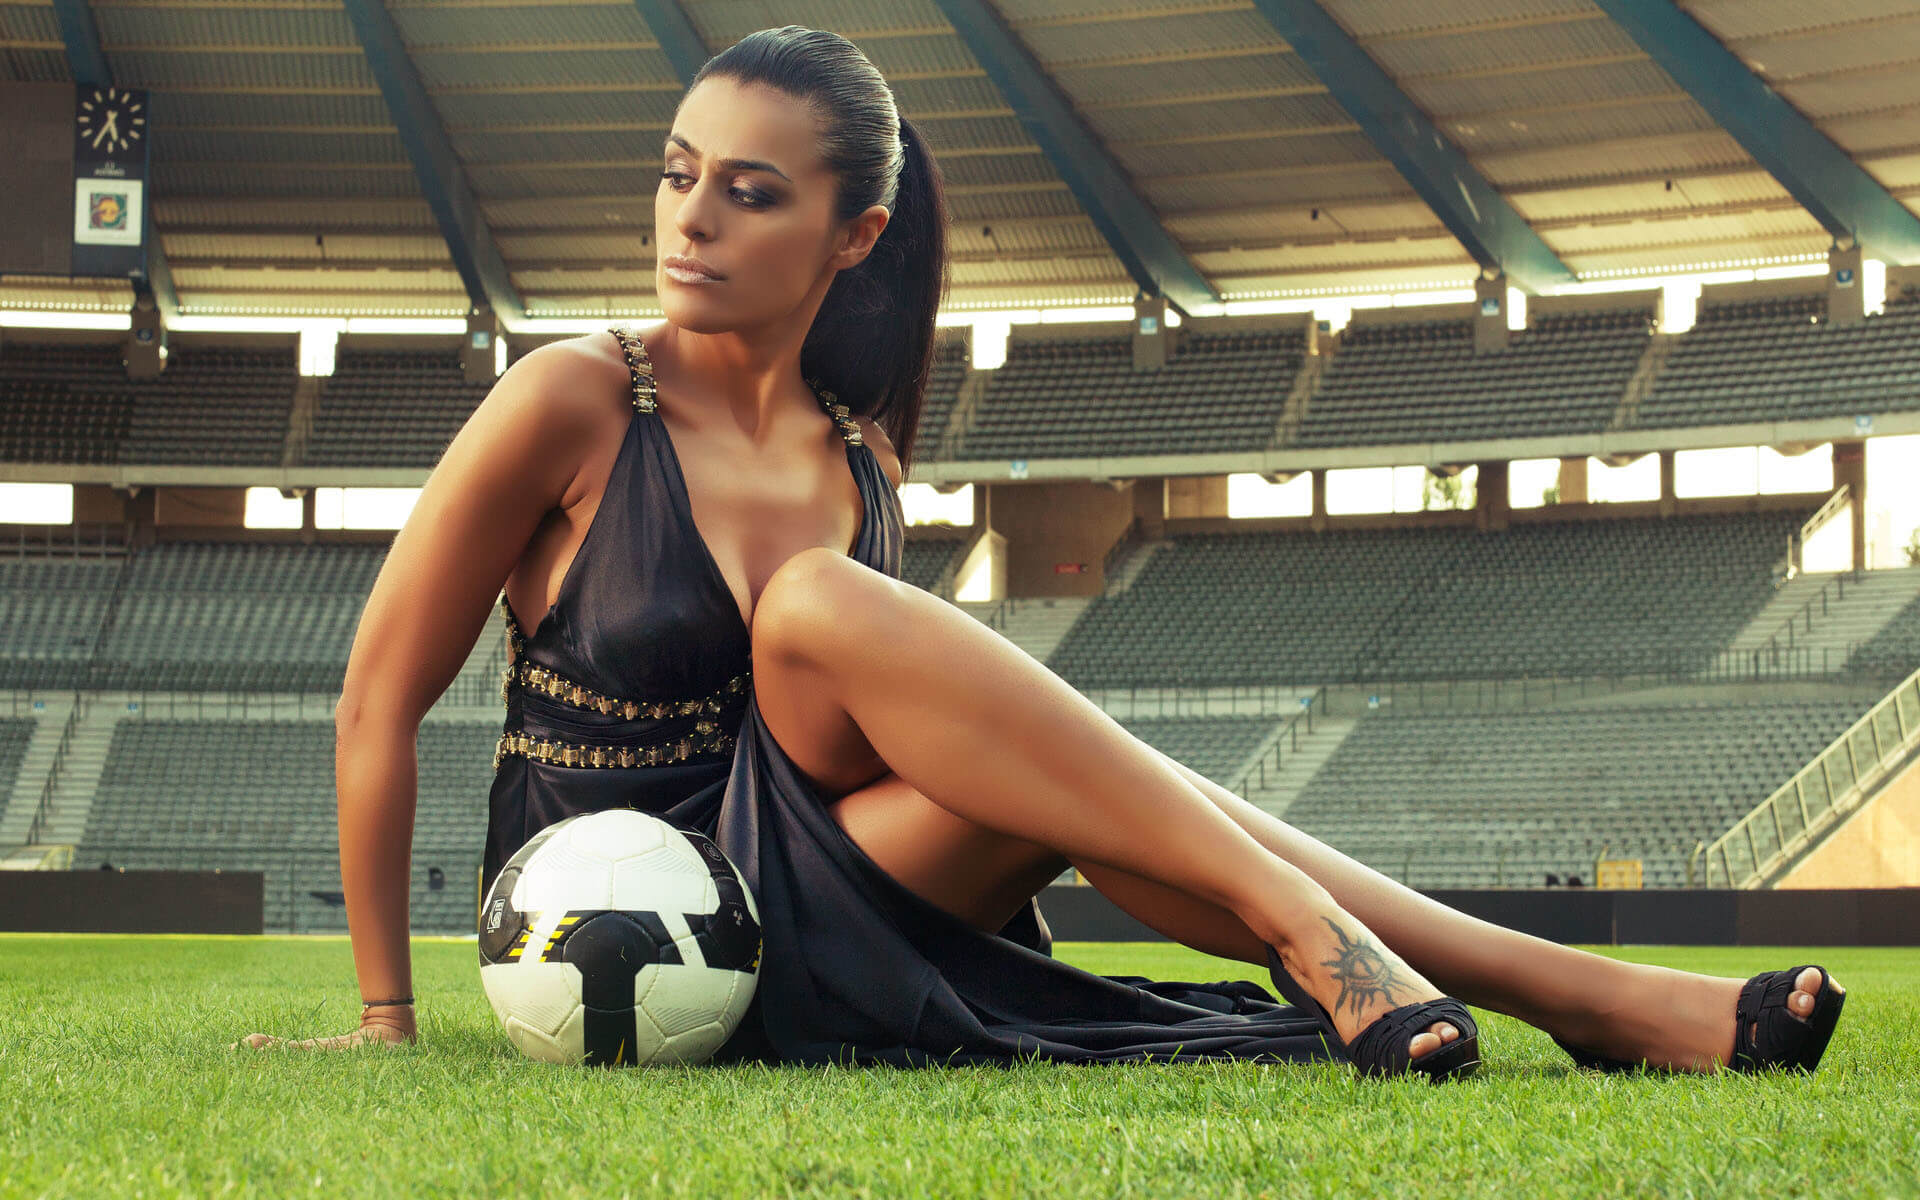 wallpapers of girl football - photo #11